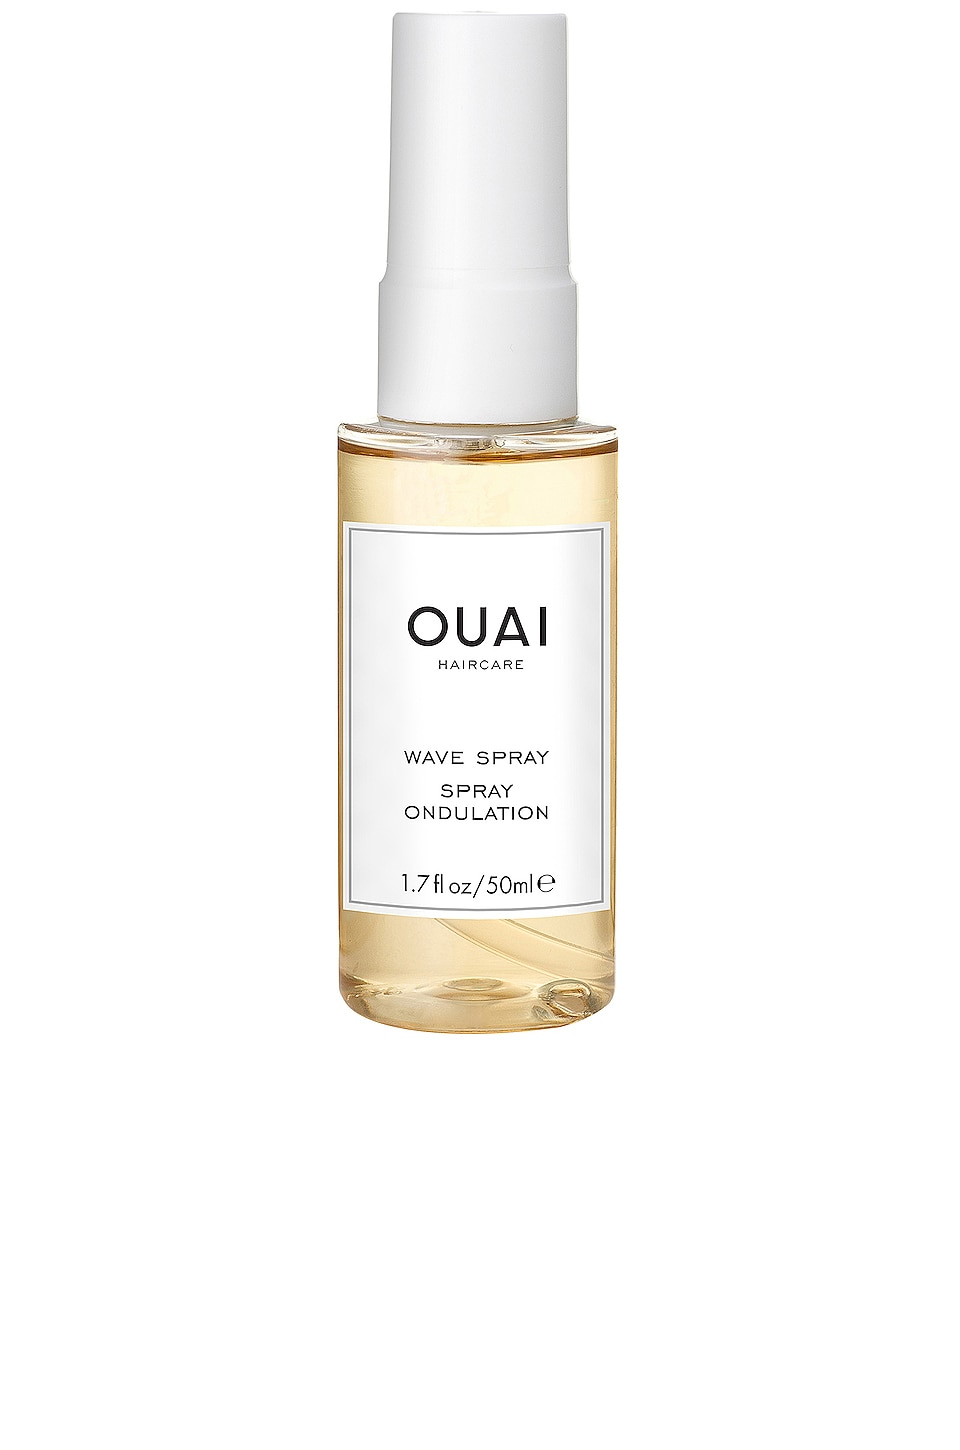 OUAI Travel Wave Spray